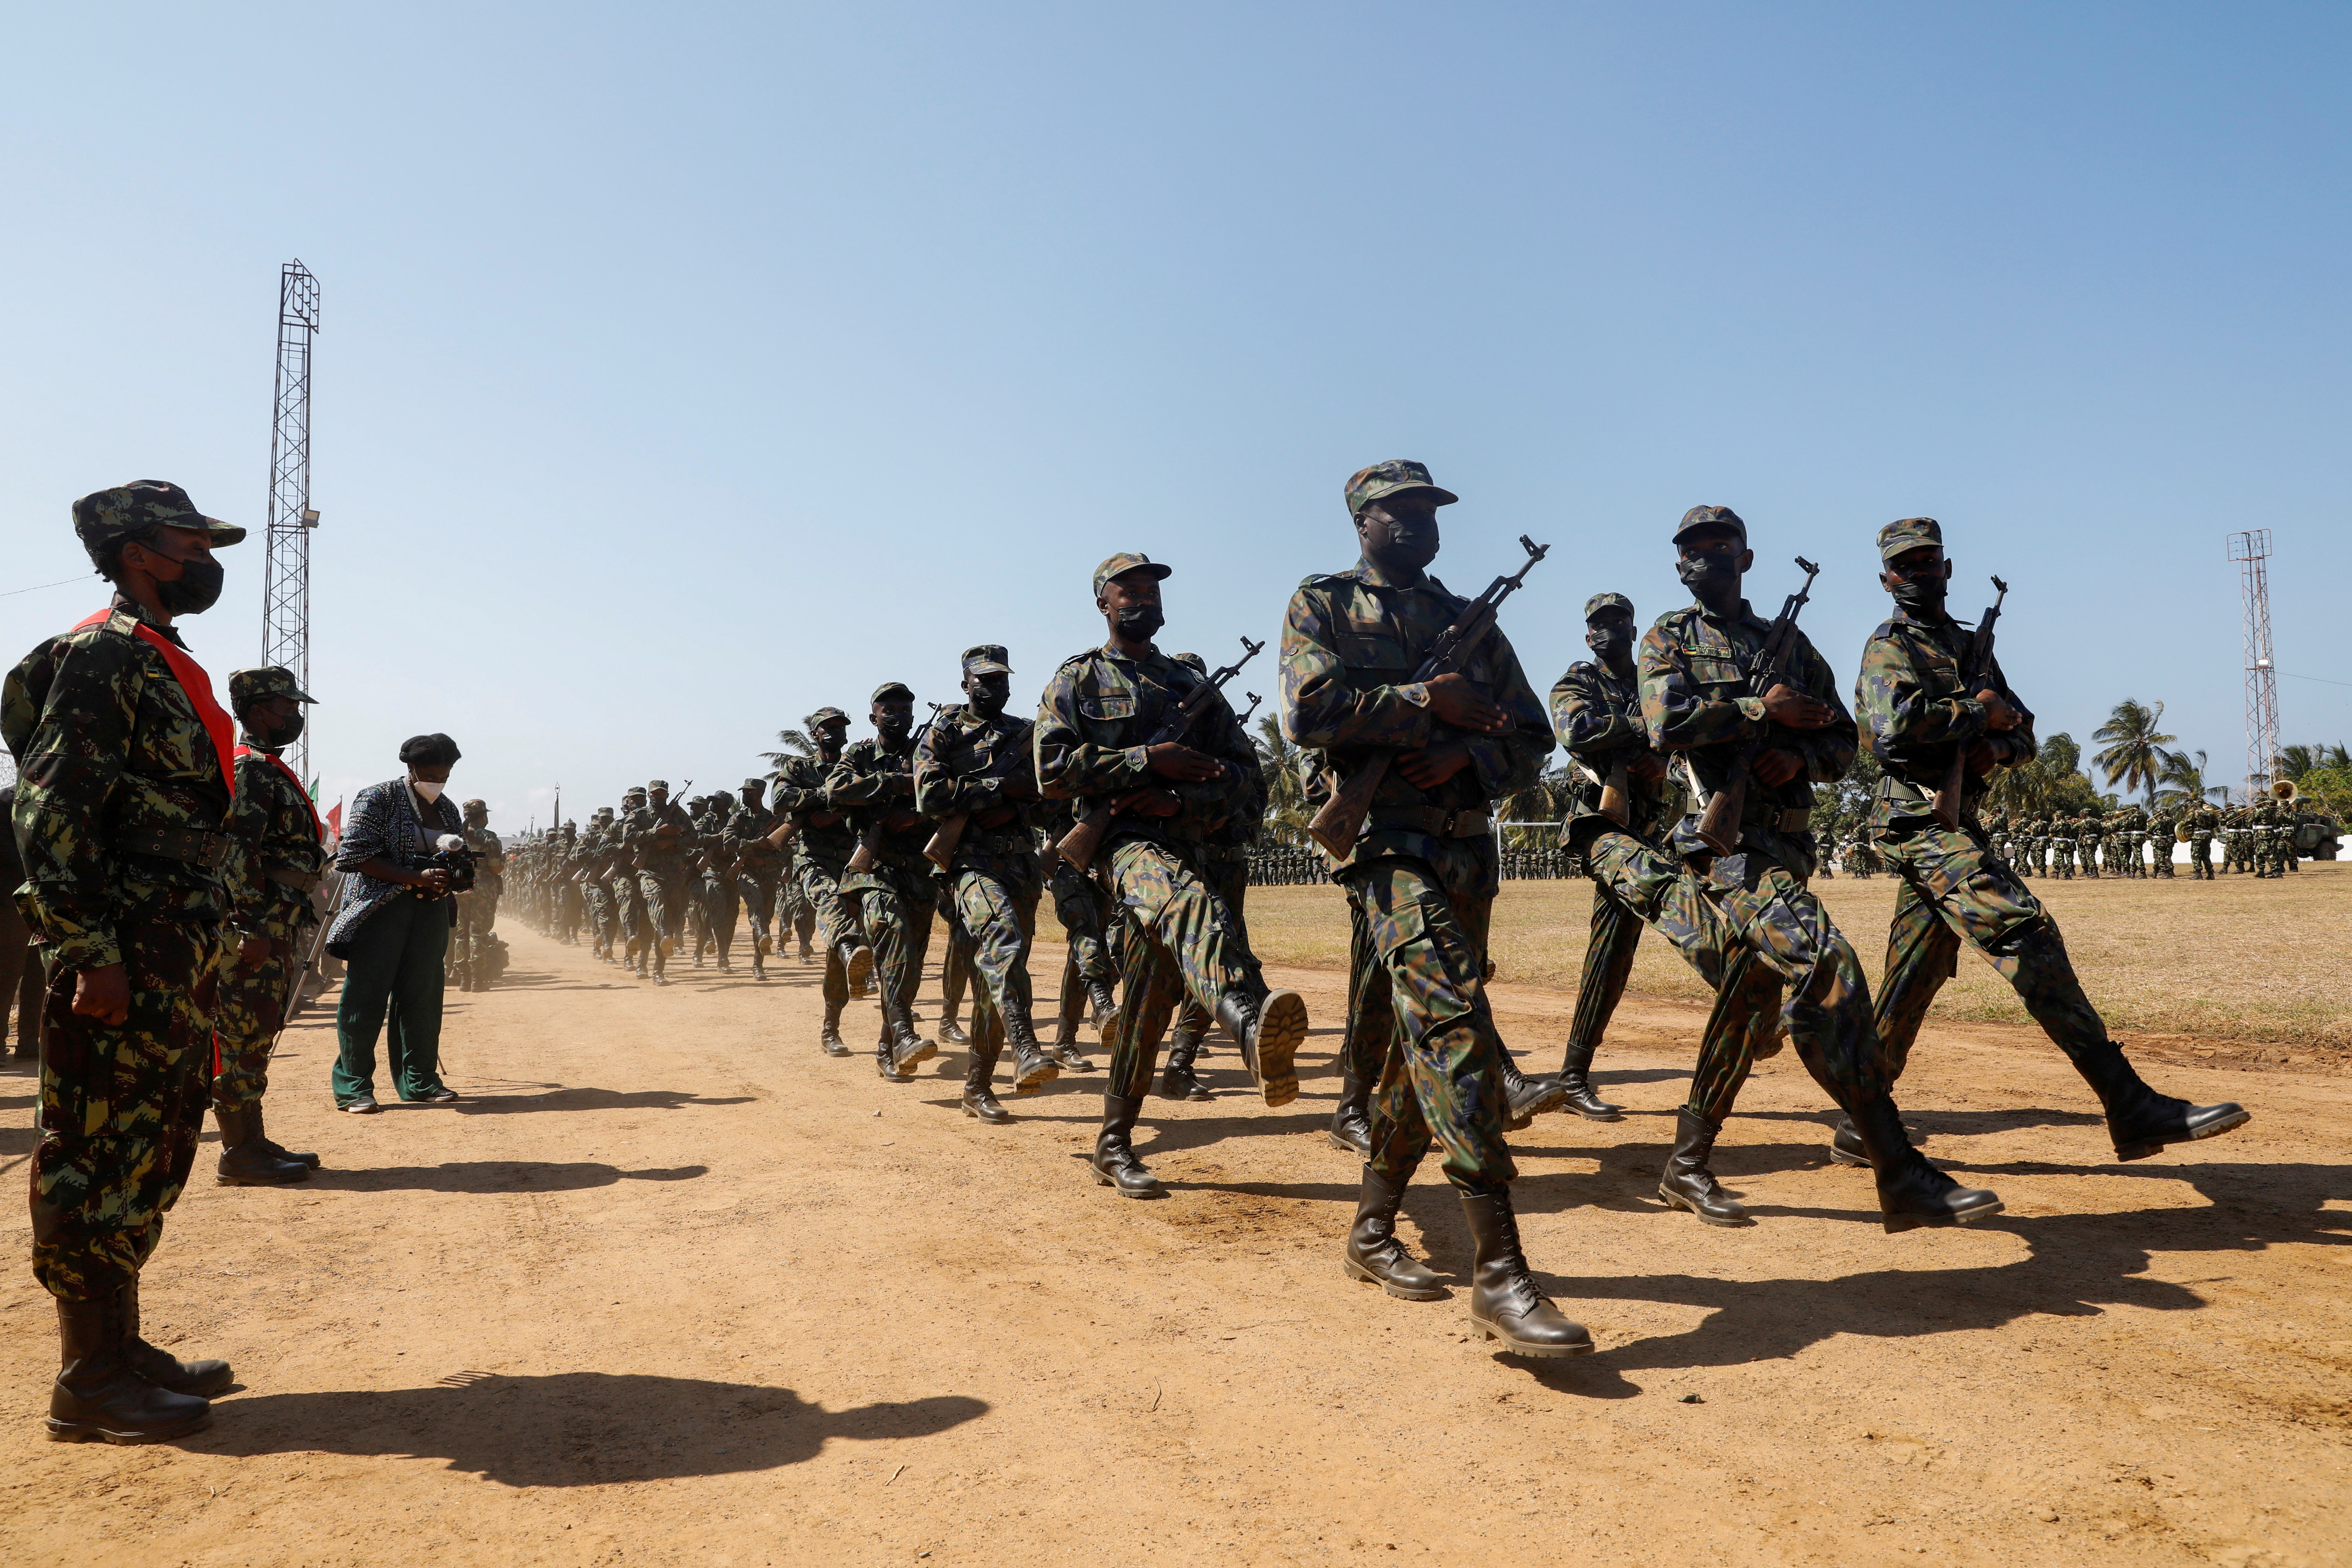 Mozambican soldiers march during Armed Forces Day celebrations in Pemba, Mozambique. September 25, 2021.REUTERS/Baz Ratner/File Photo